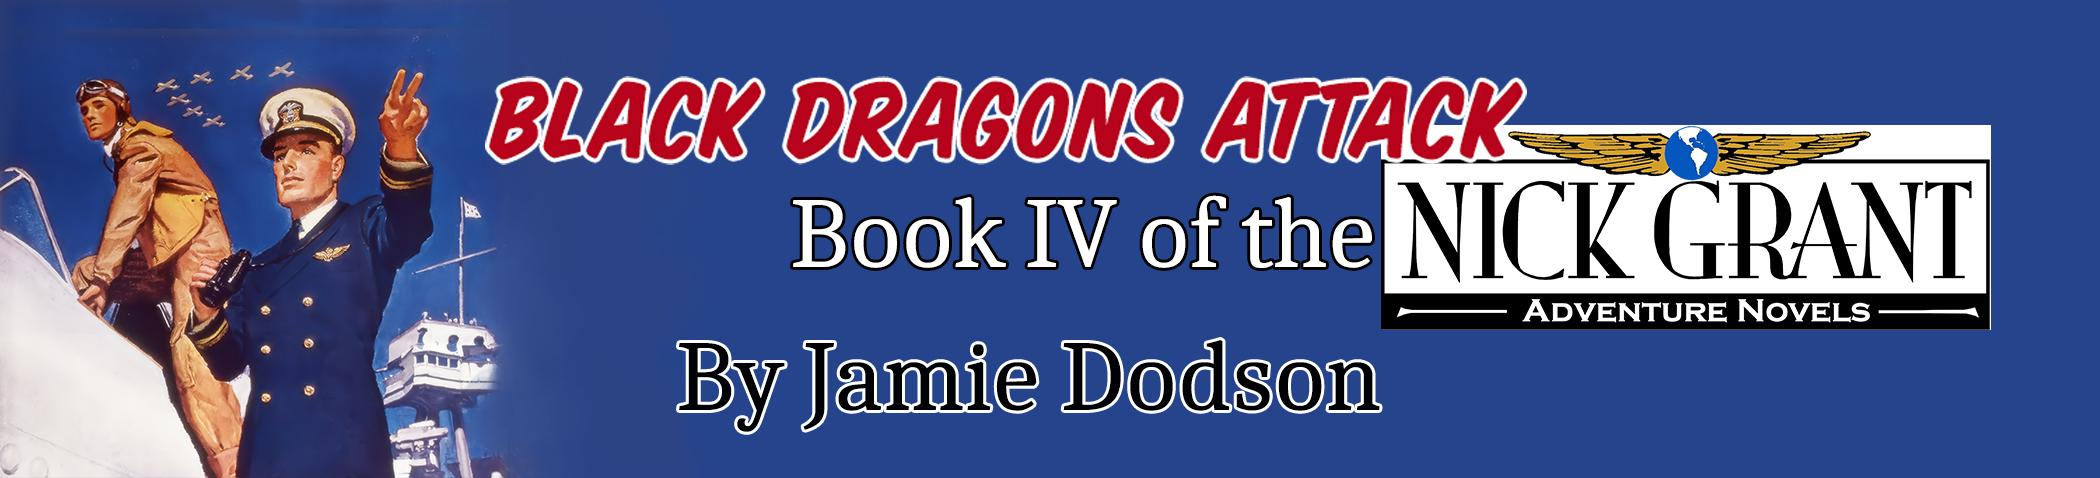 Black Dragons Attack by Jamie Dodson, published by the Ardent Writer Press on October 1, 2017